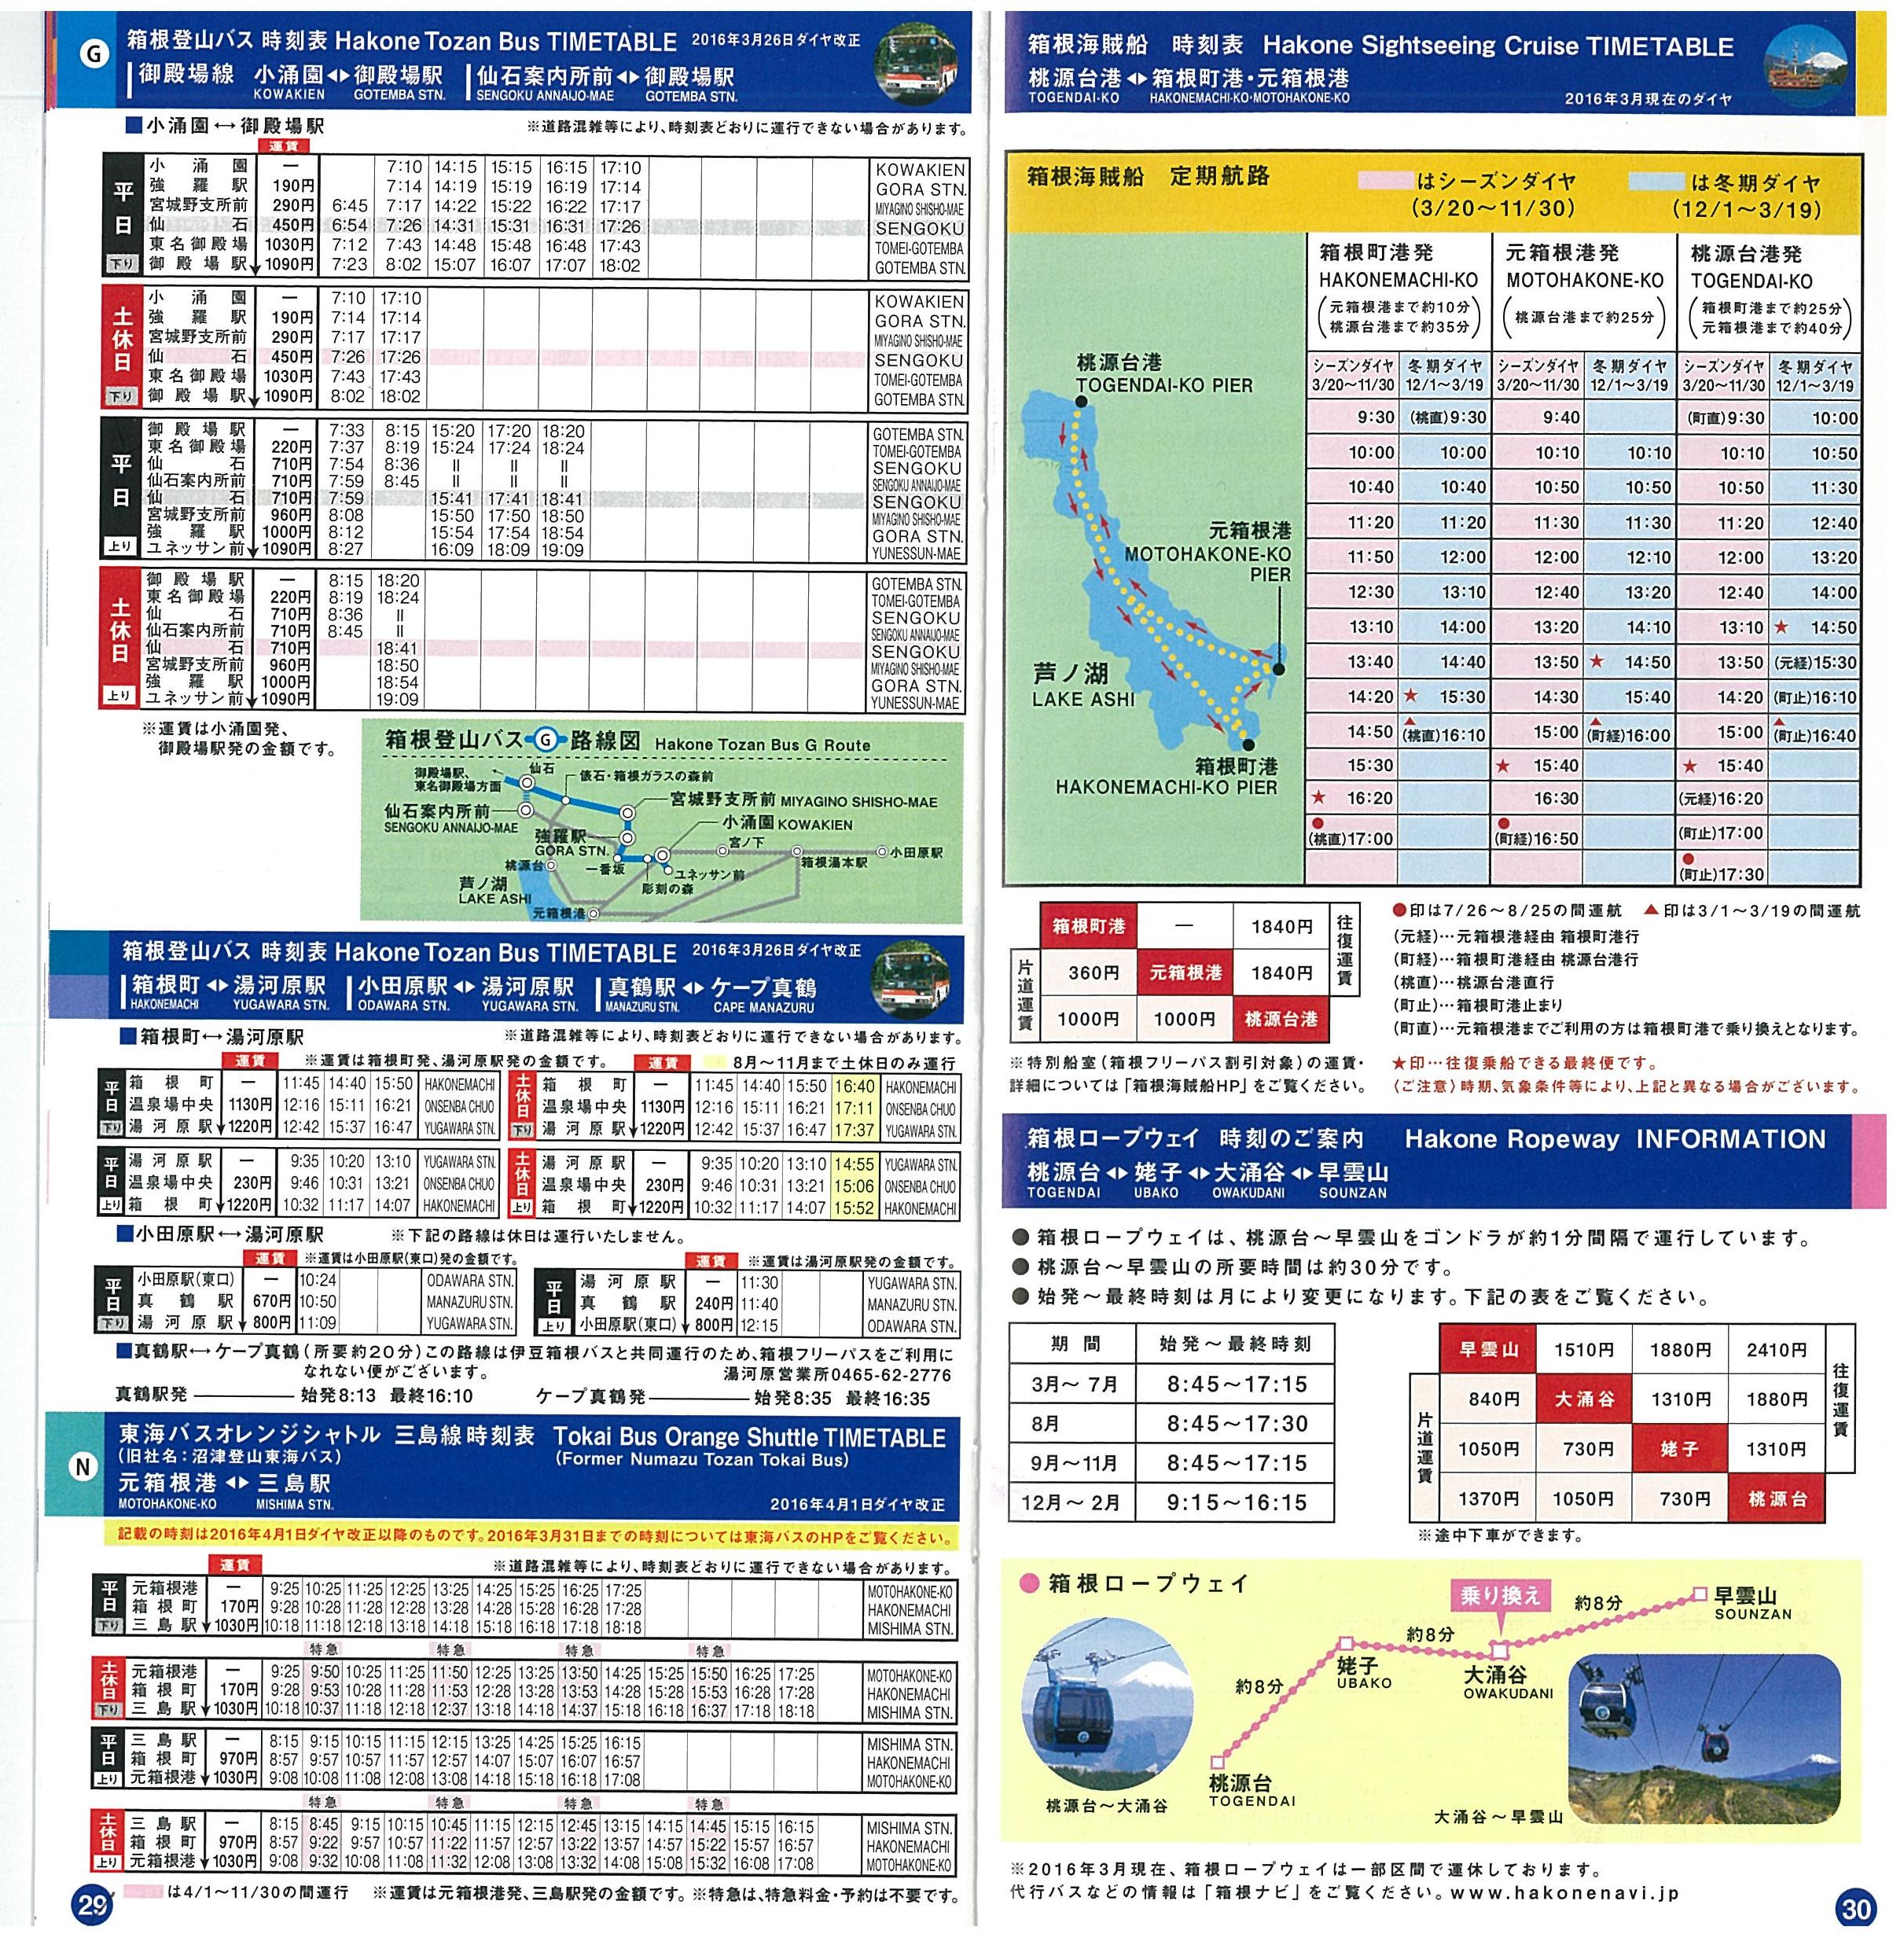 [Continuation] Day Trip from Tokyo : Hakone 箱根. Maps and 9 timeteables. Pages 25 and 30. Hakone Tozan Bus G Route snd the Hakone Sightseeing Cruise Timetables 箱根登山バス G 線 箱根海賊船 時刻表